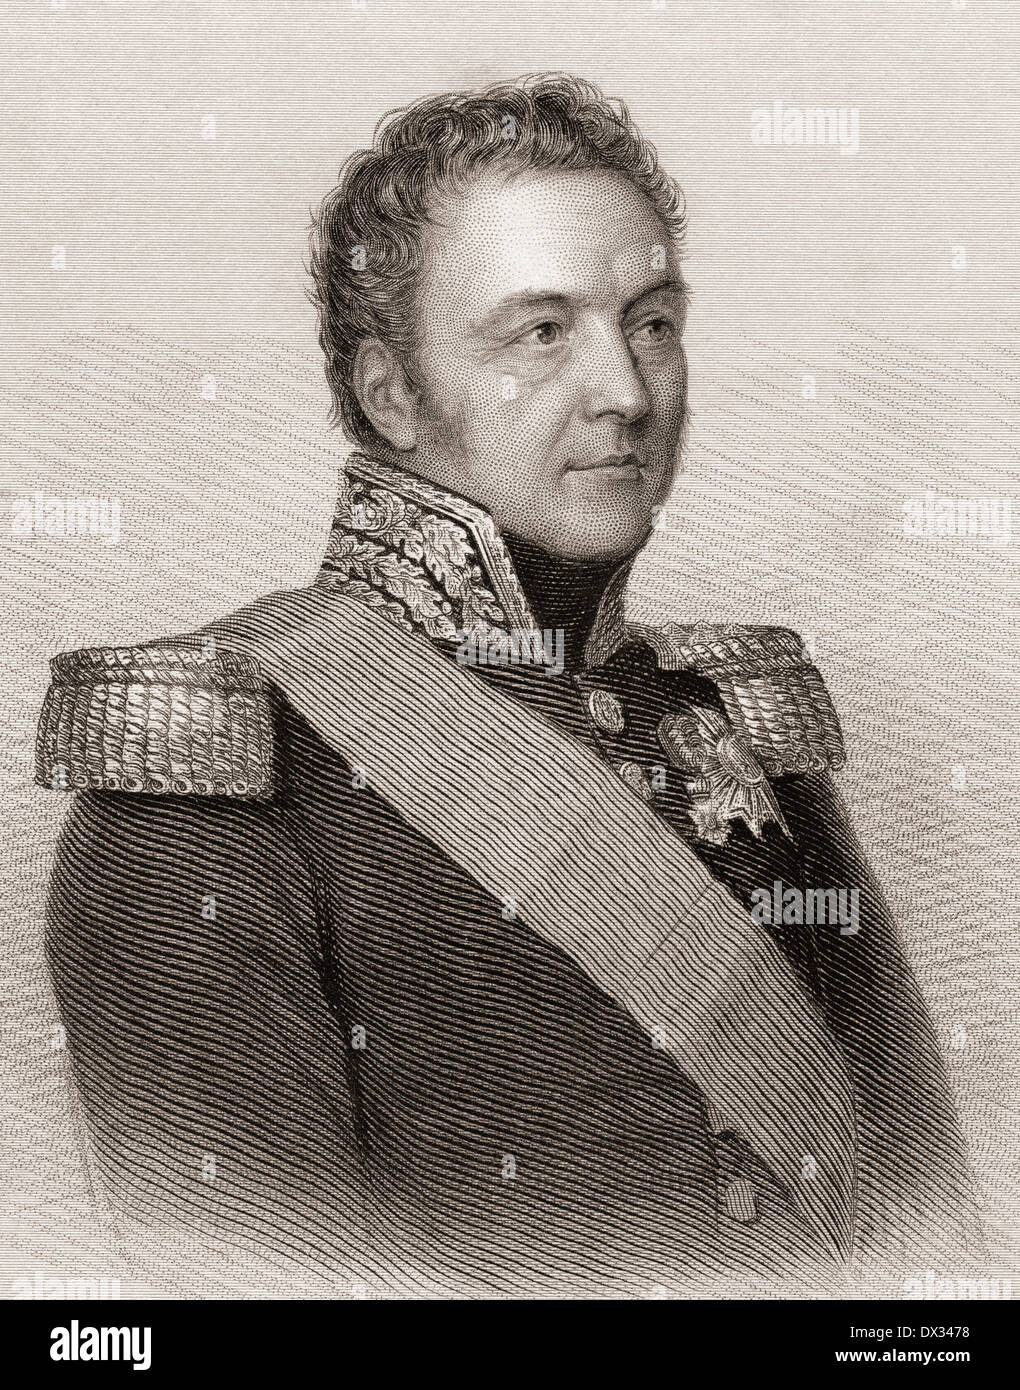 Bertrand, Count Clausel (or Clauzel) 1772 –1842. Marshal of France. - Stock Image